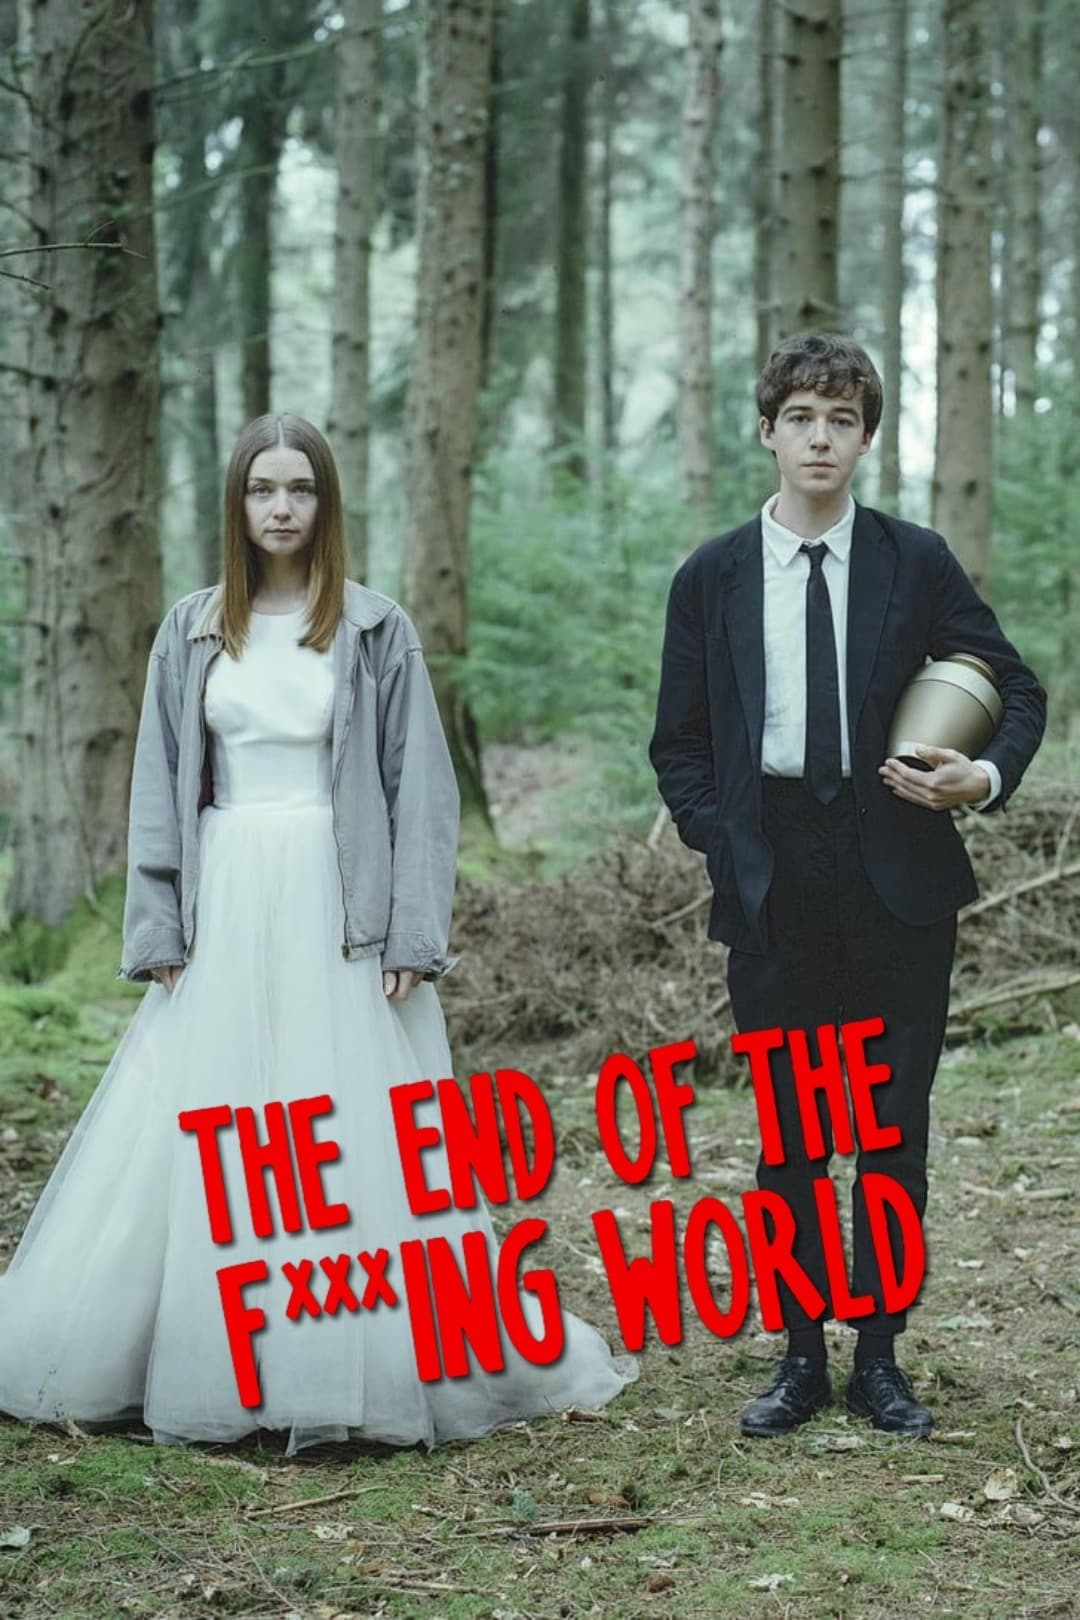 The End of the F***ing World' />